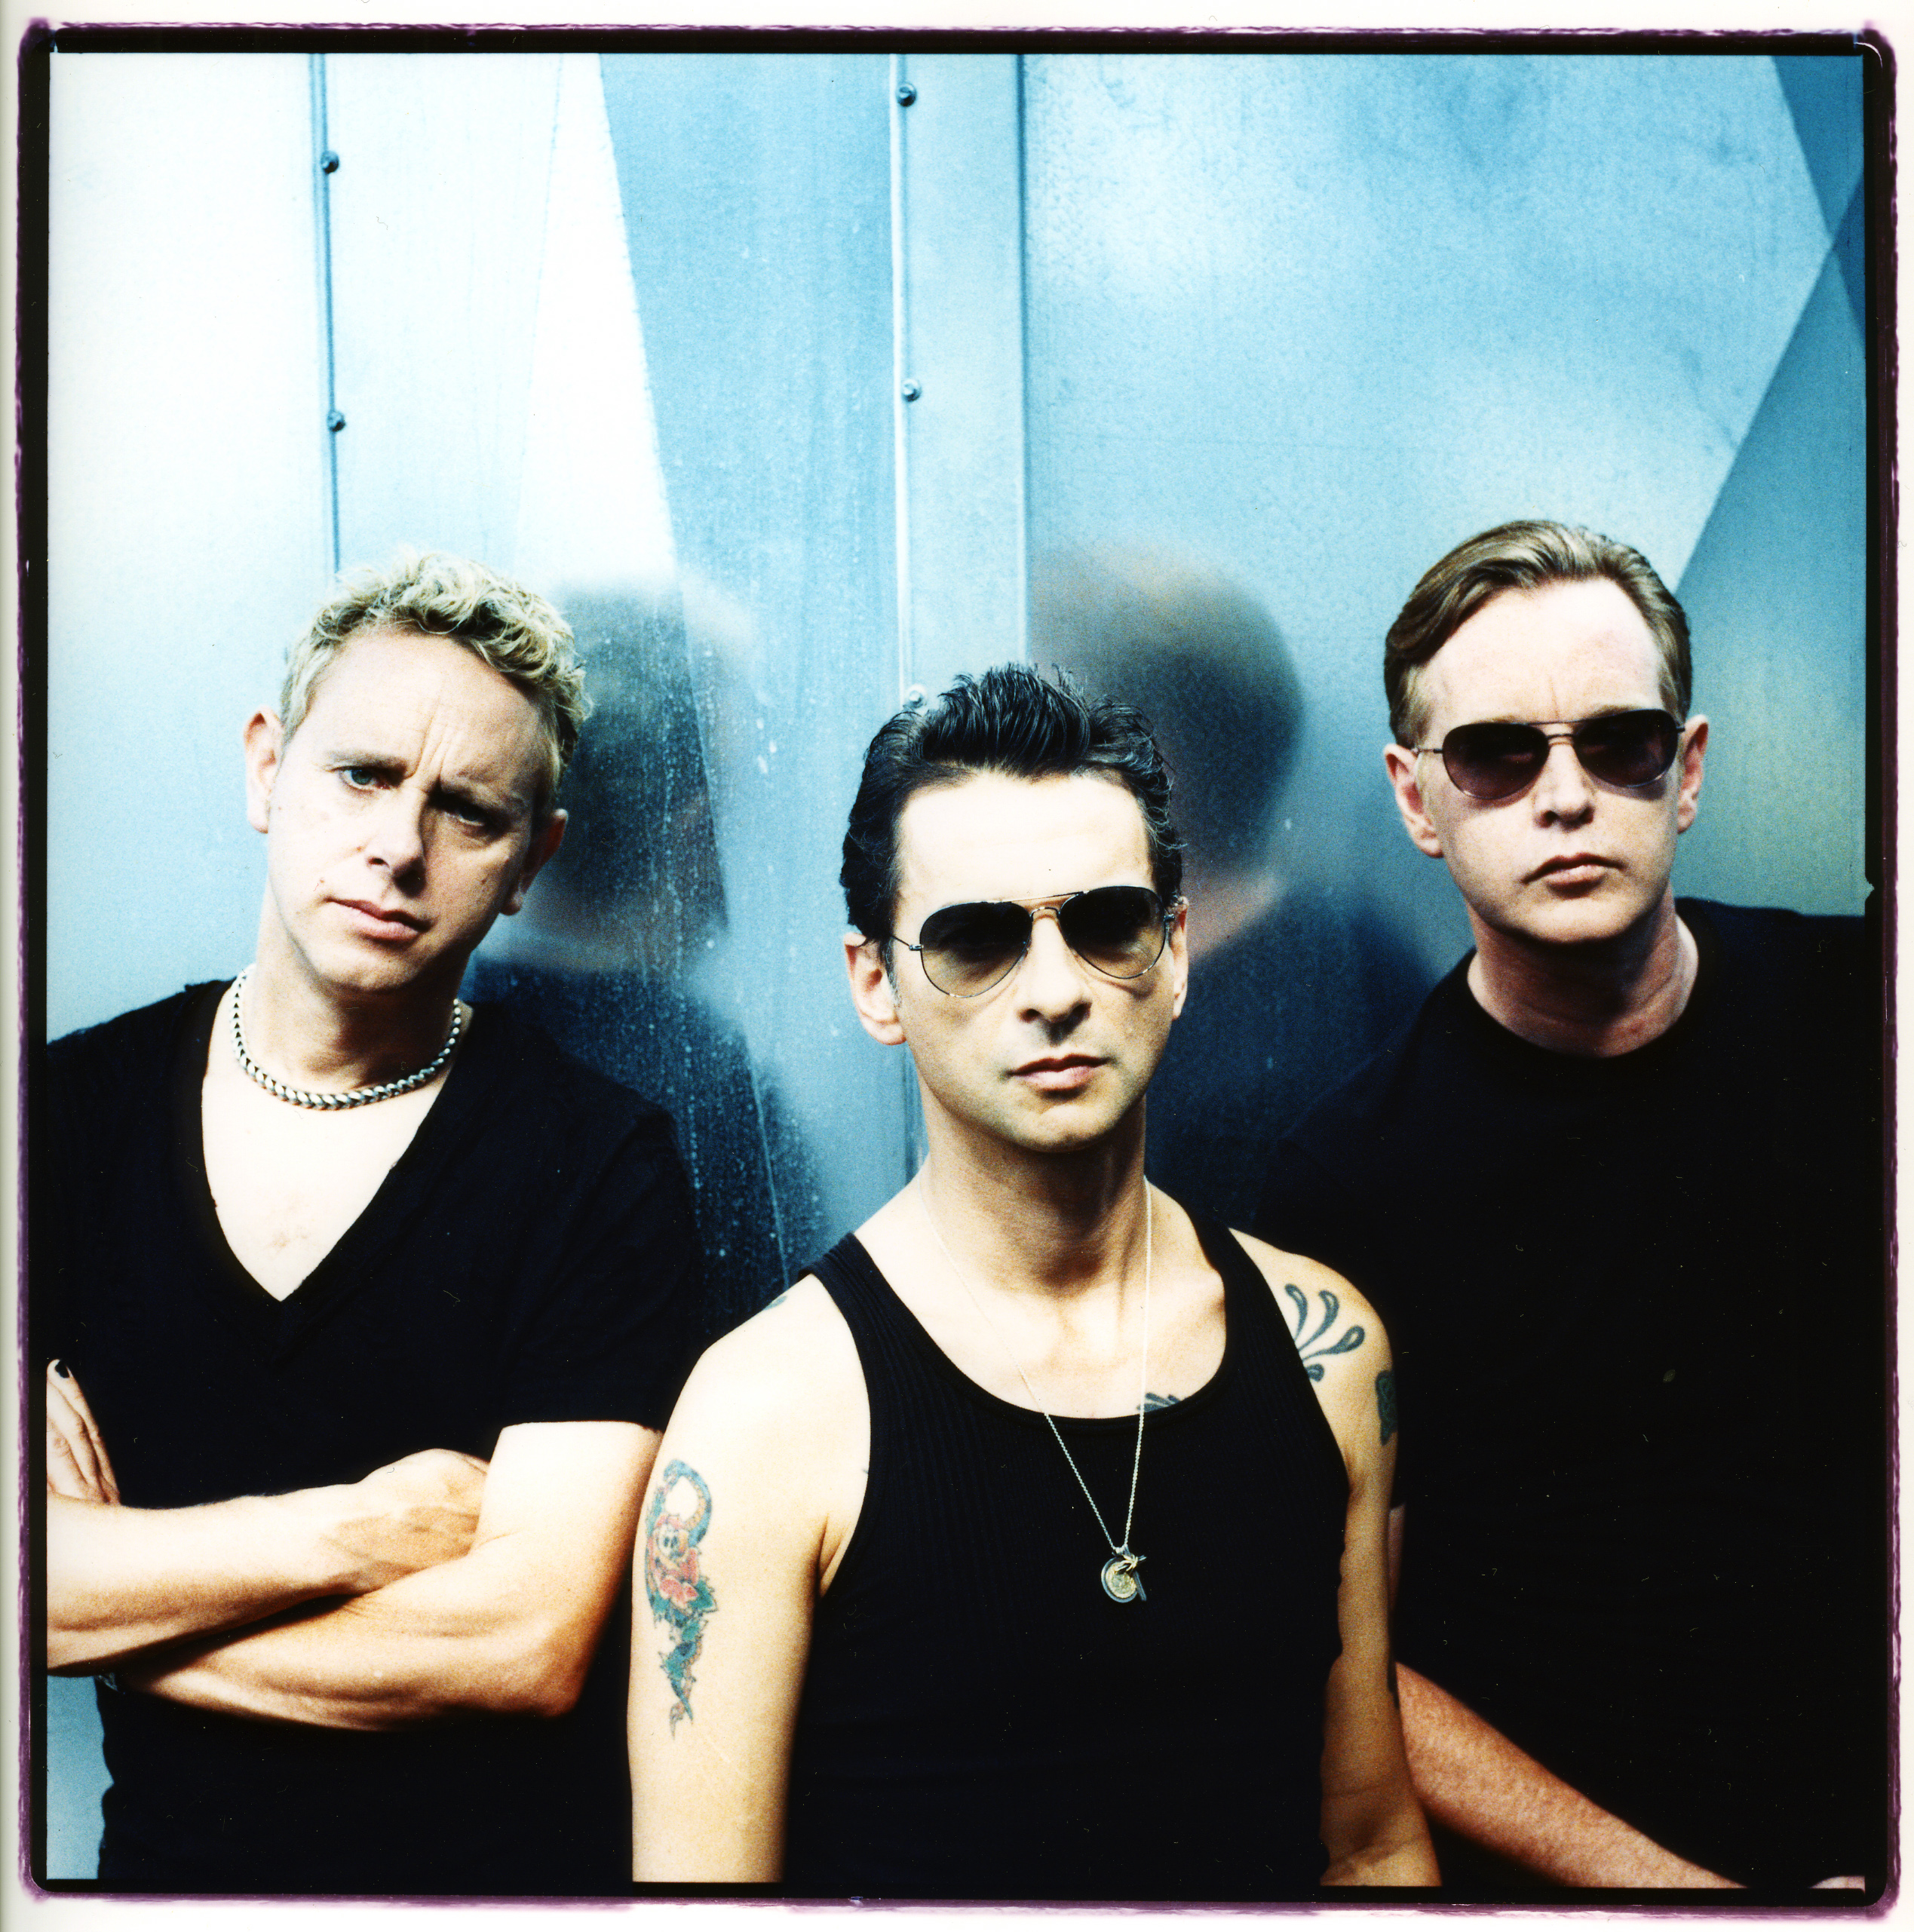 Portrait de Depeche Mode à Cologne, en septembre 2005.